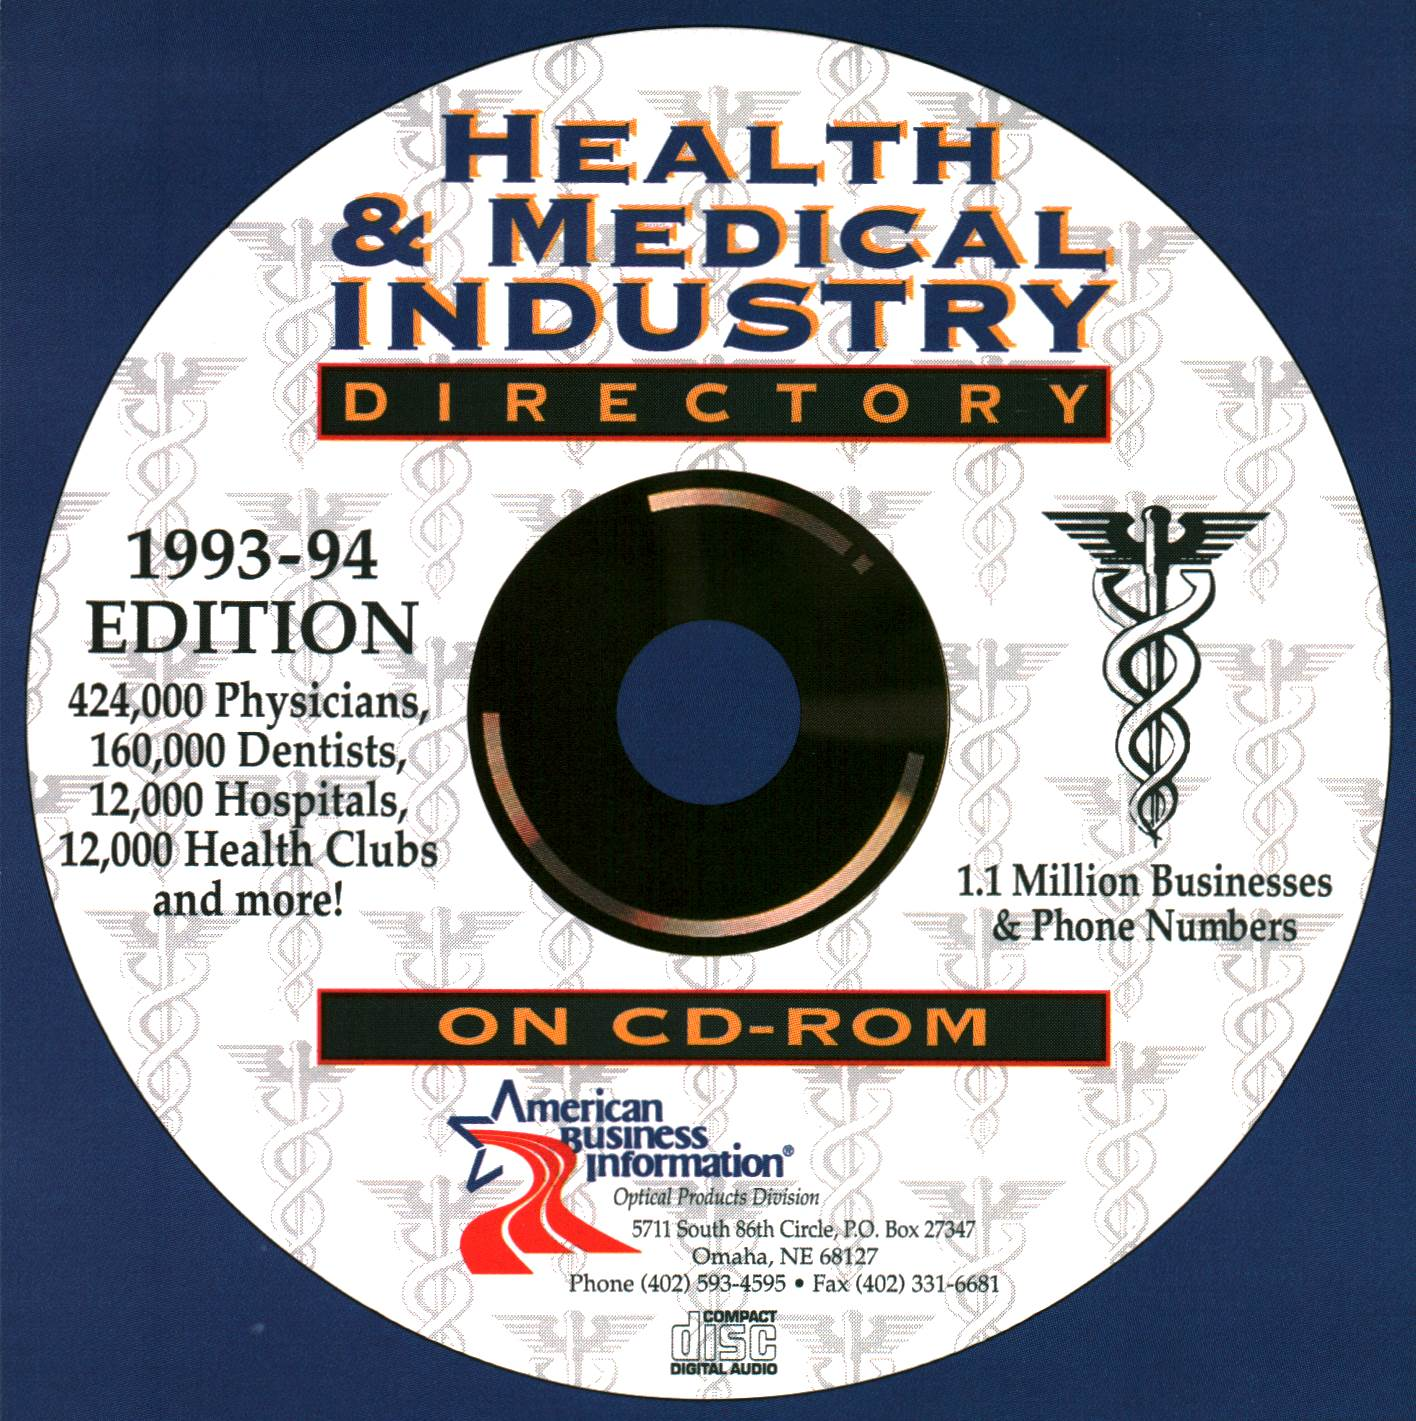 Health & Medical Industry Directory